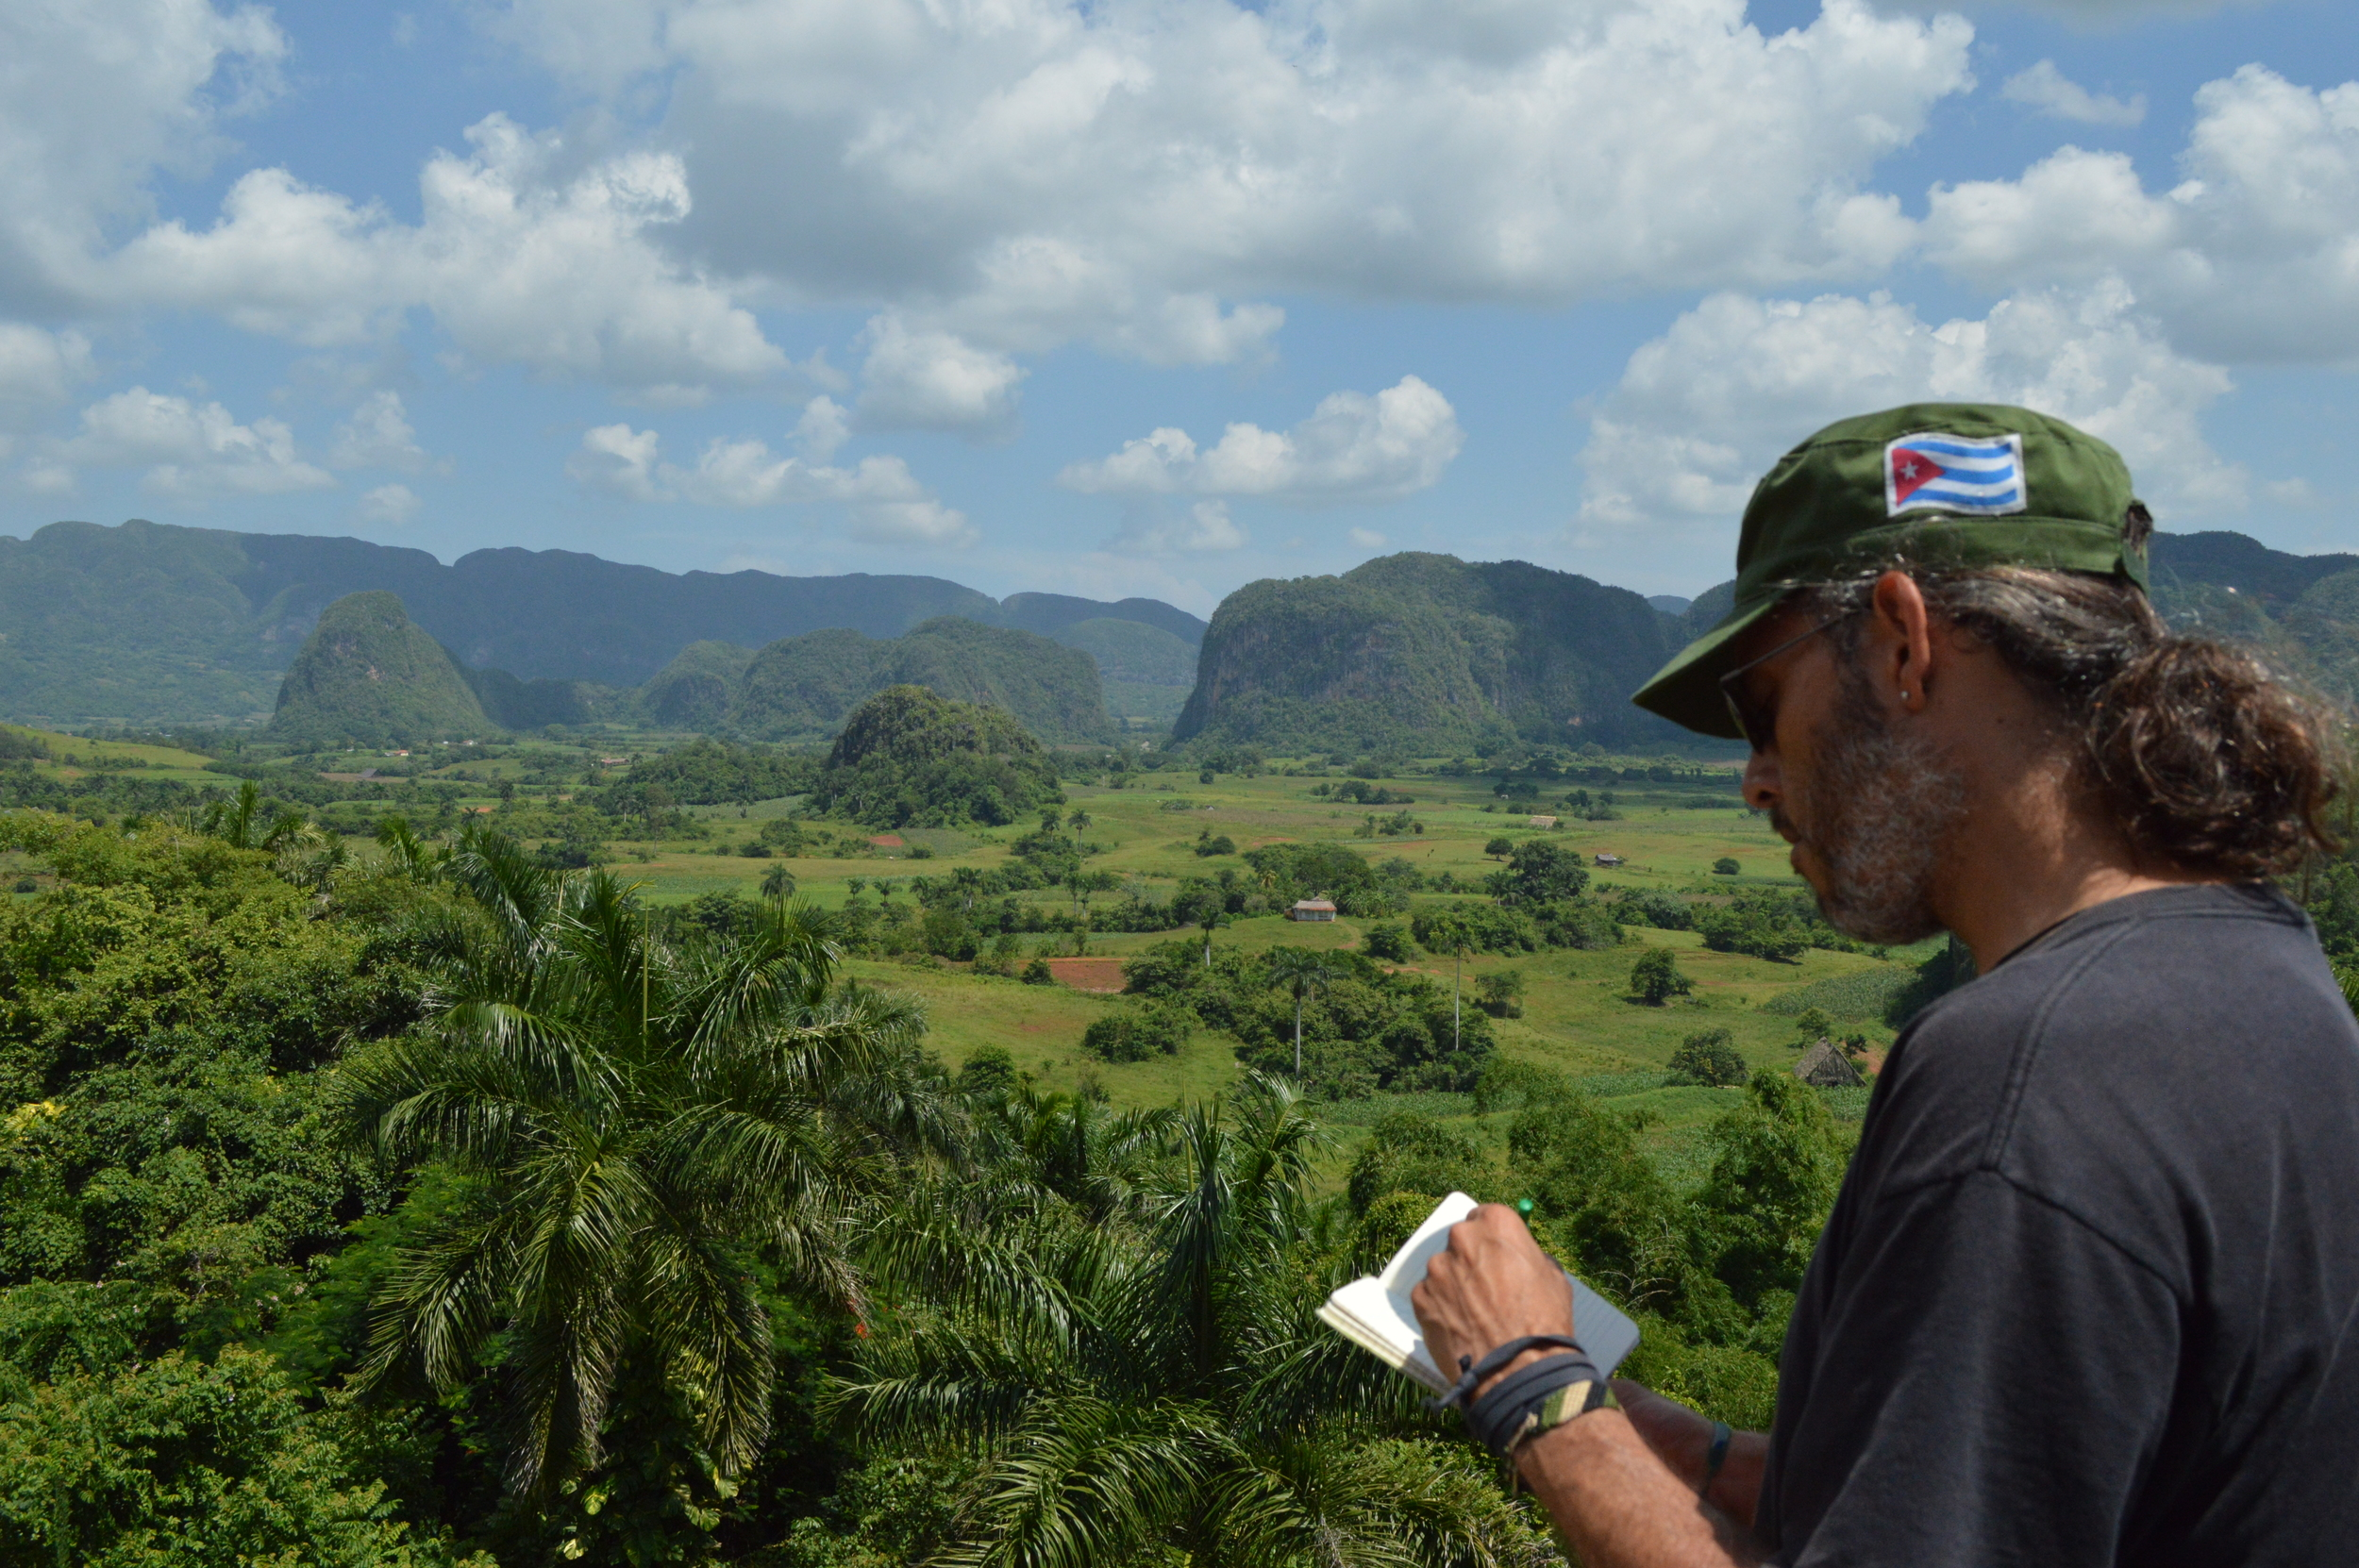 Breathtaking view from the Viñales Valley in the province of Pinar del Rio, Cuba | Magnífica vista del valle de Viñales.